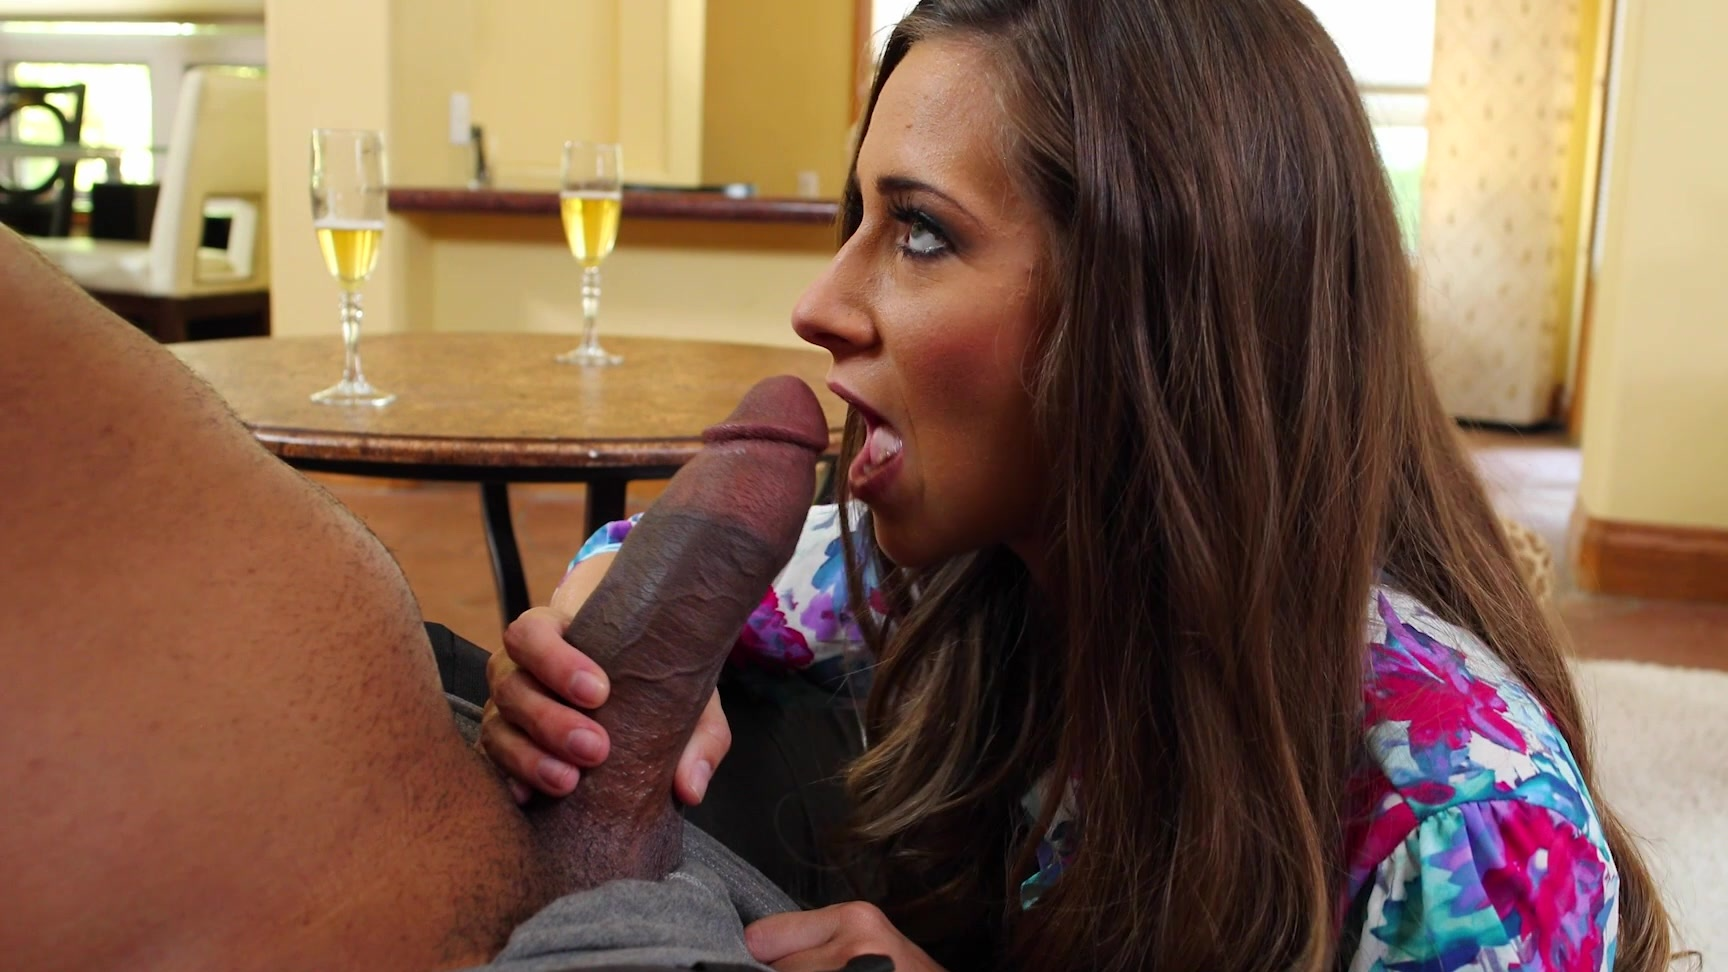 Amateur video bj and fuck for lj in sacramento - 1 1